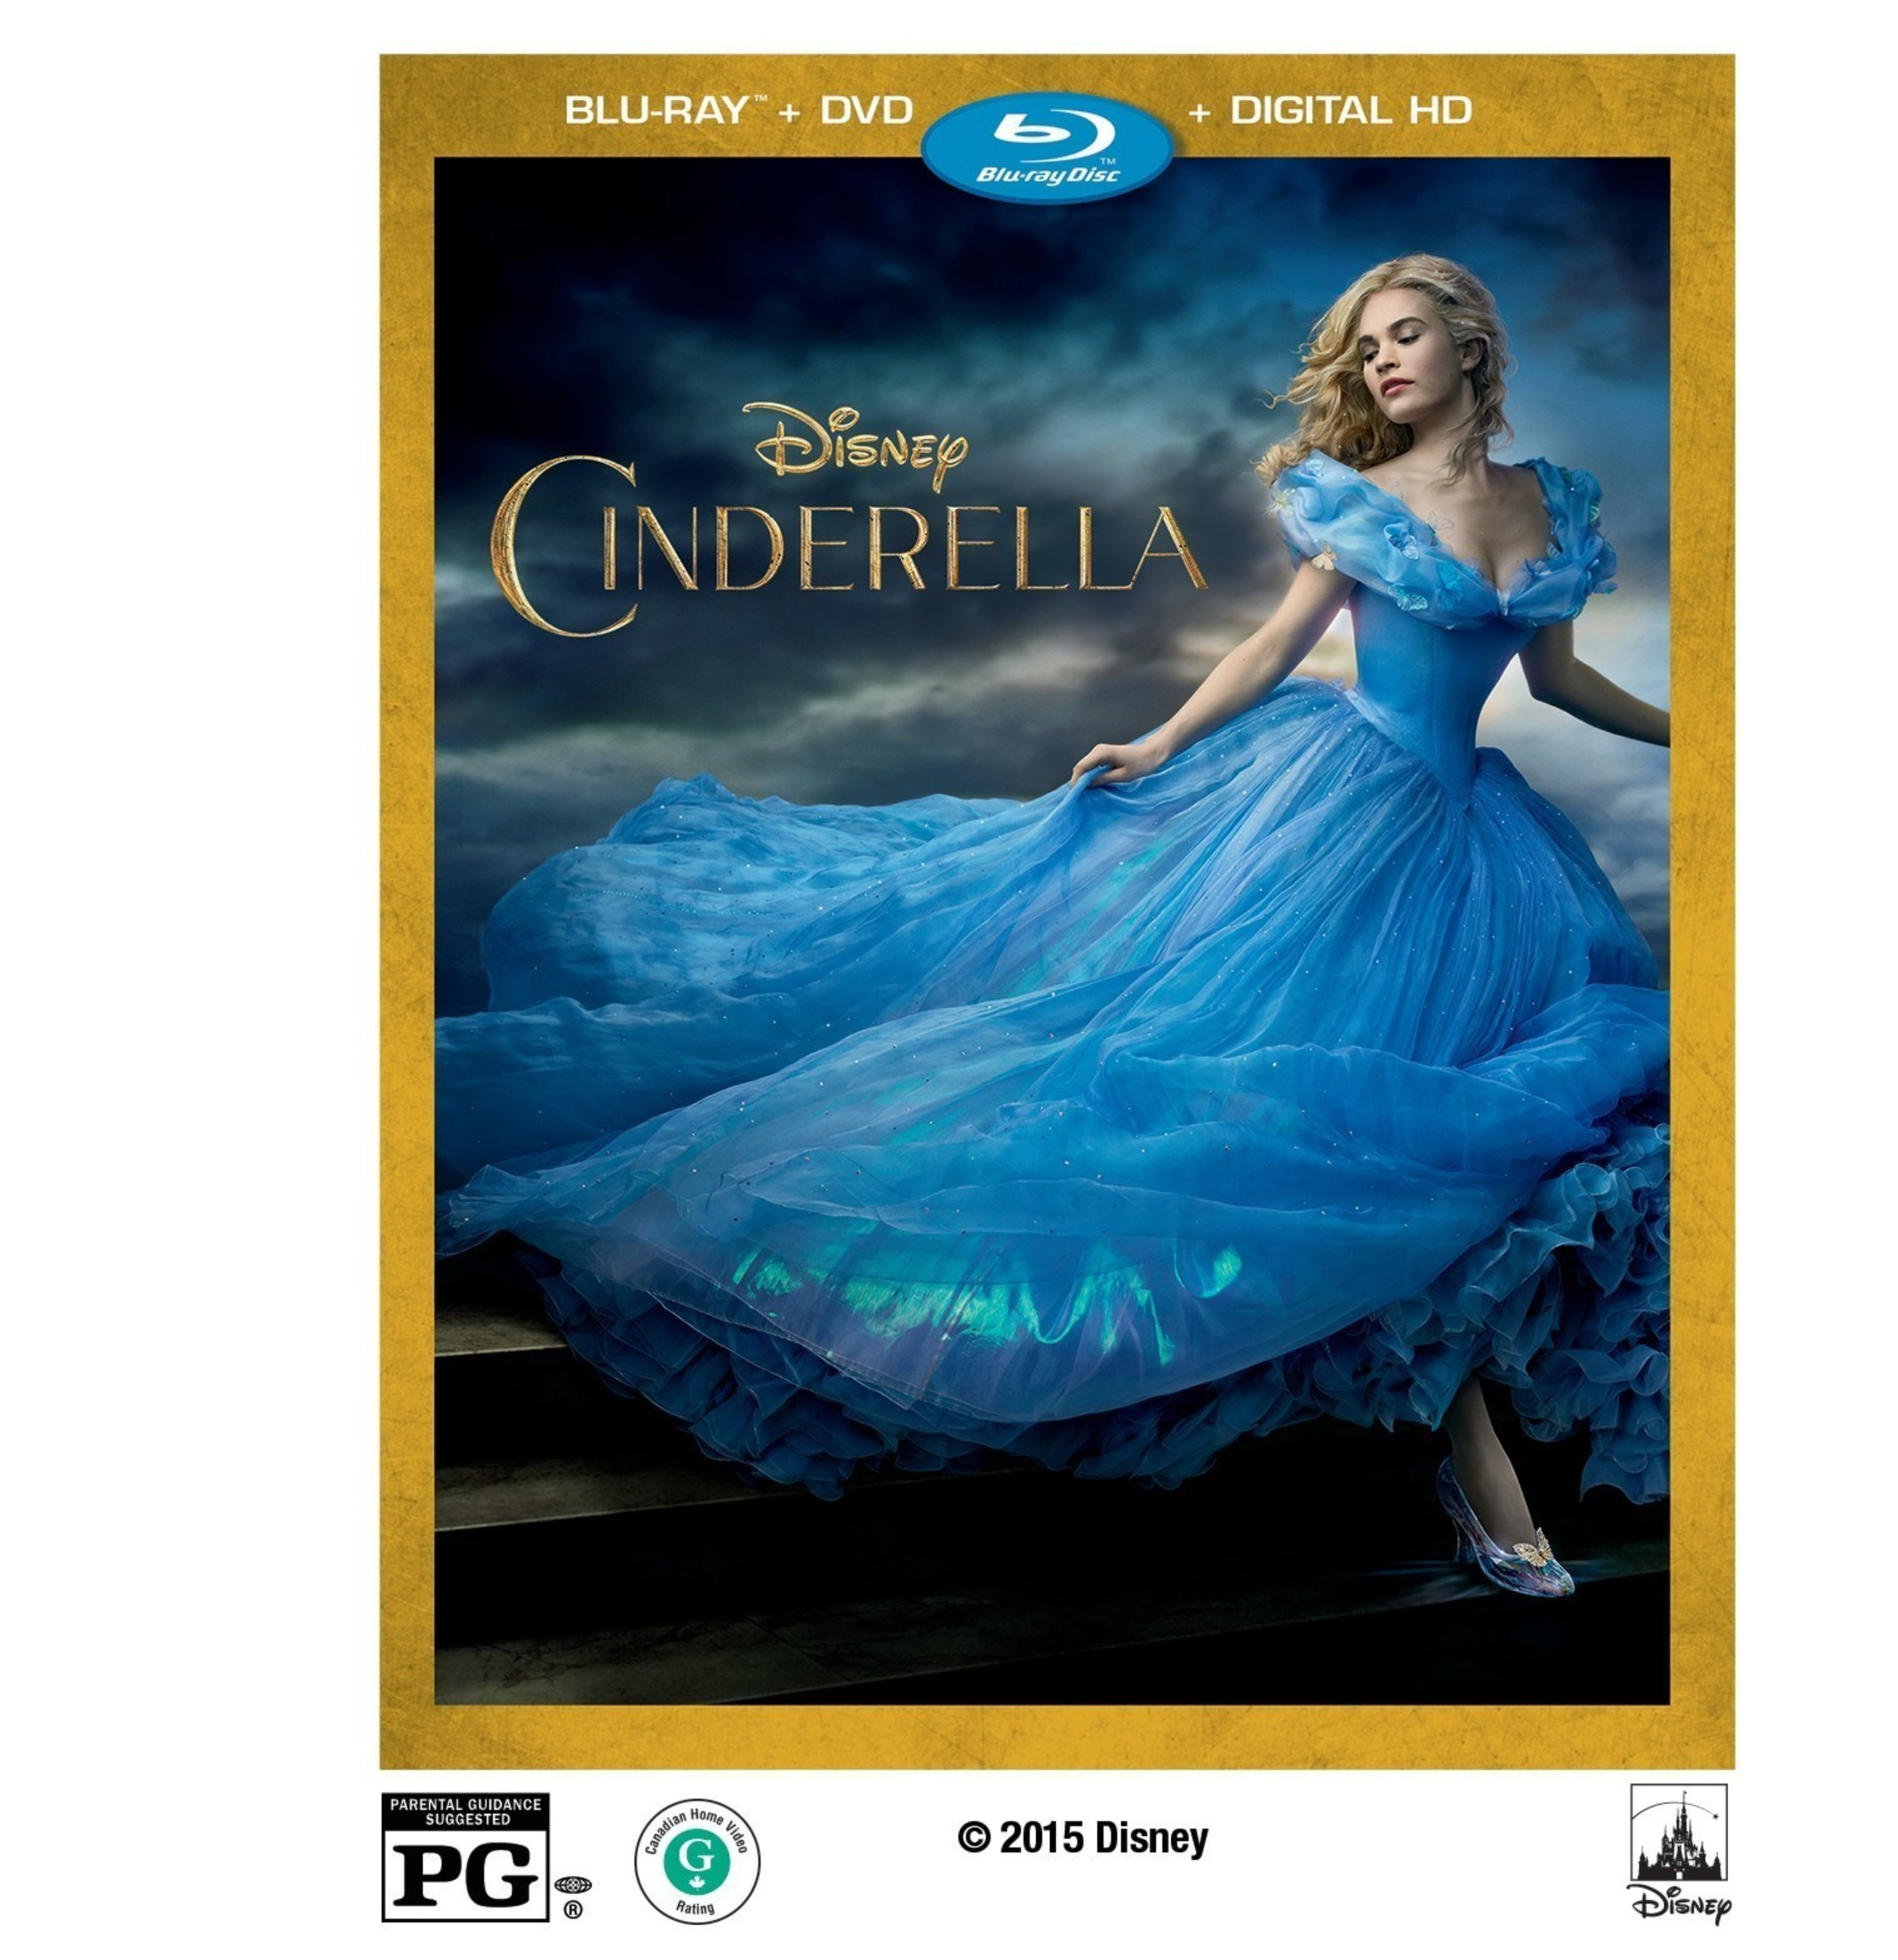 In Celebration of the Digital HD and Blu-ray Release of 'Cinderella,' Disney Launches The 'A Million Words of Kindness' Campaign